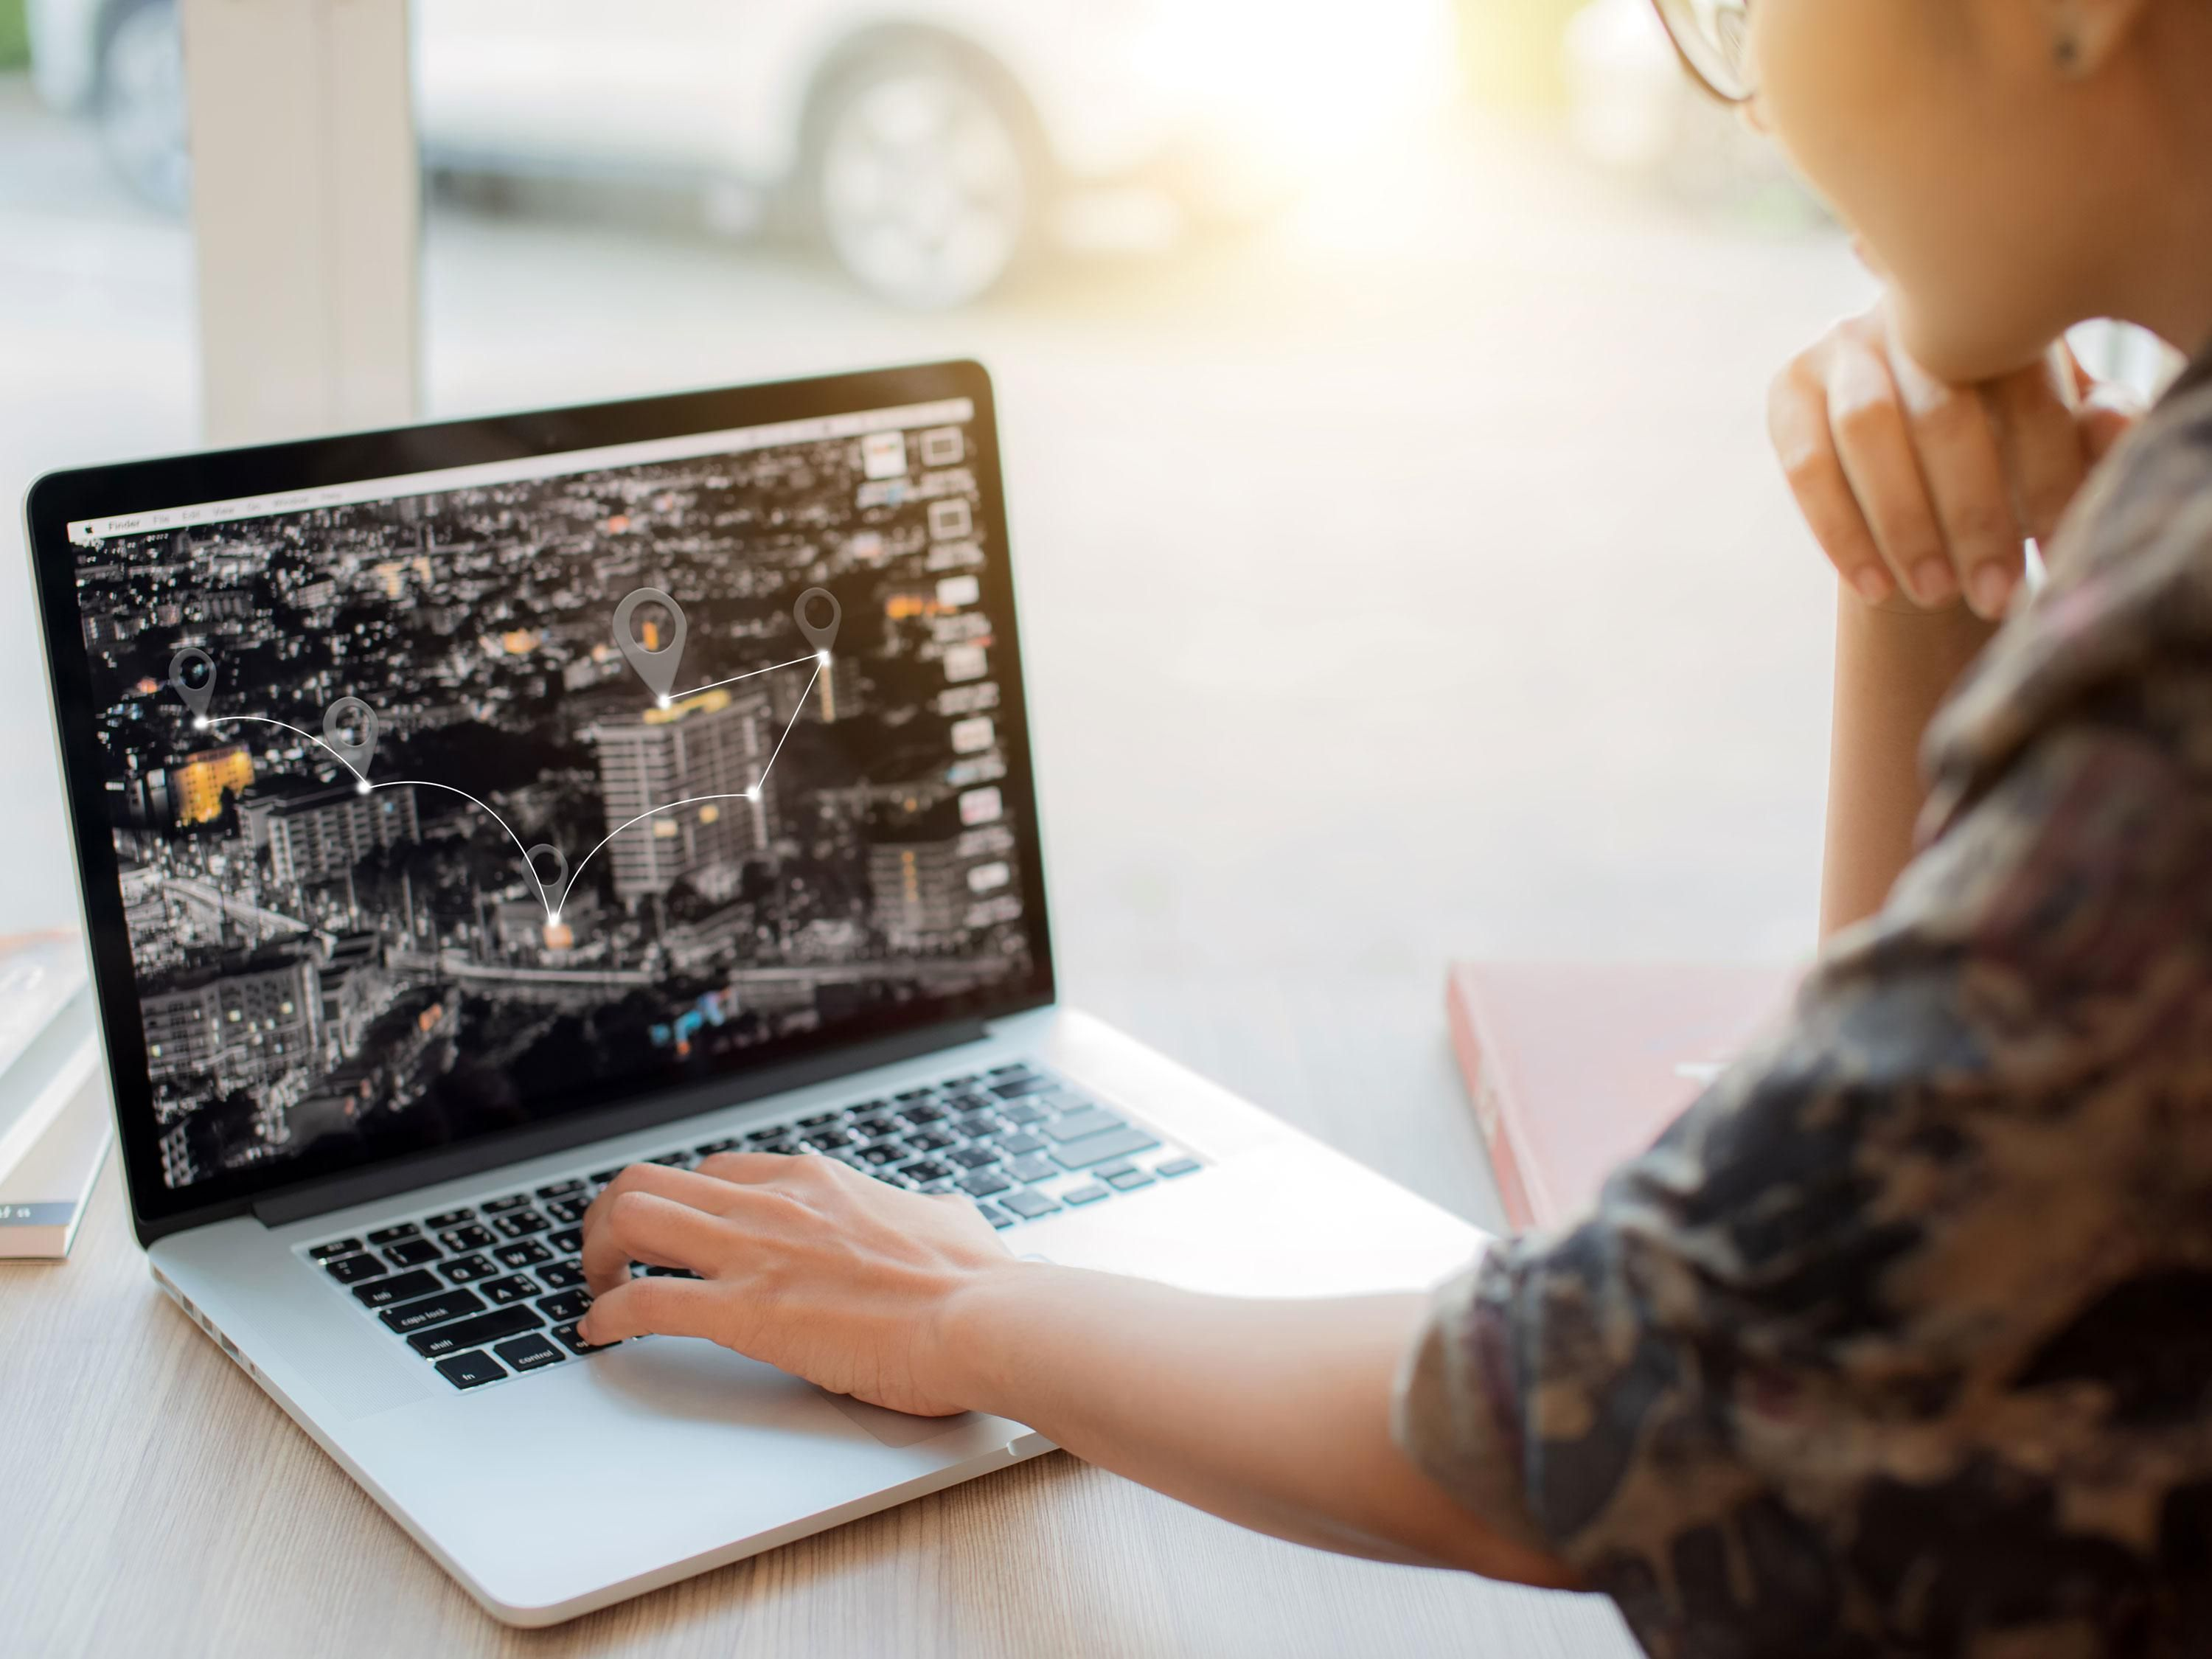 A woman looks at a map on computer screen with location icons